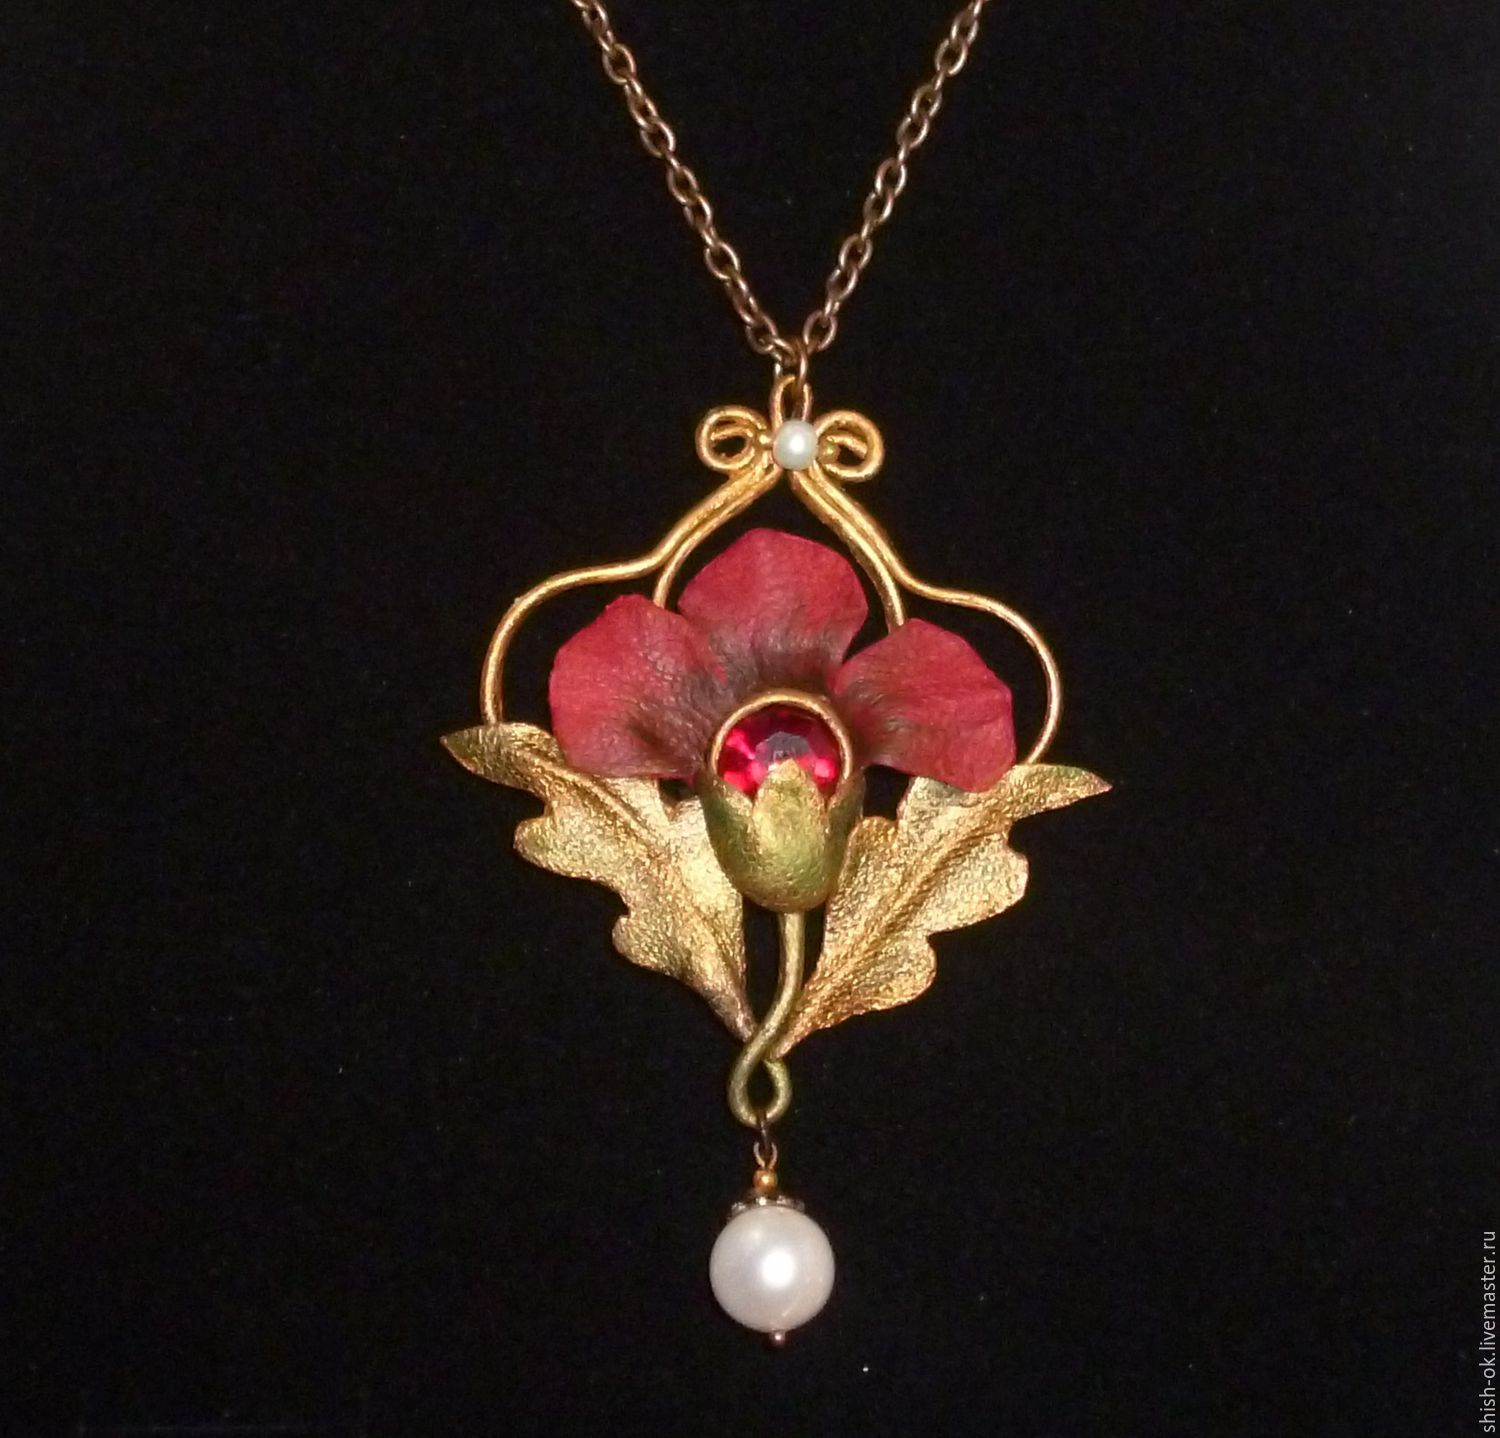 Pendant from the skin of 'the Scarlet flower', Pendants, Moscow,  Фото №1